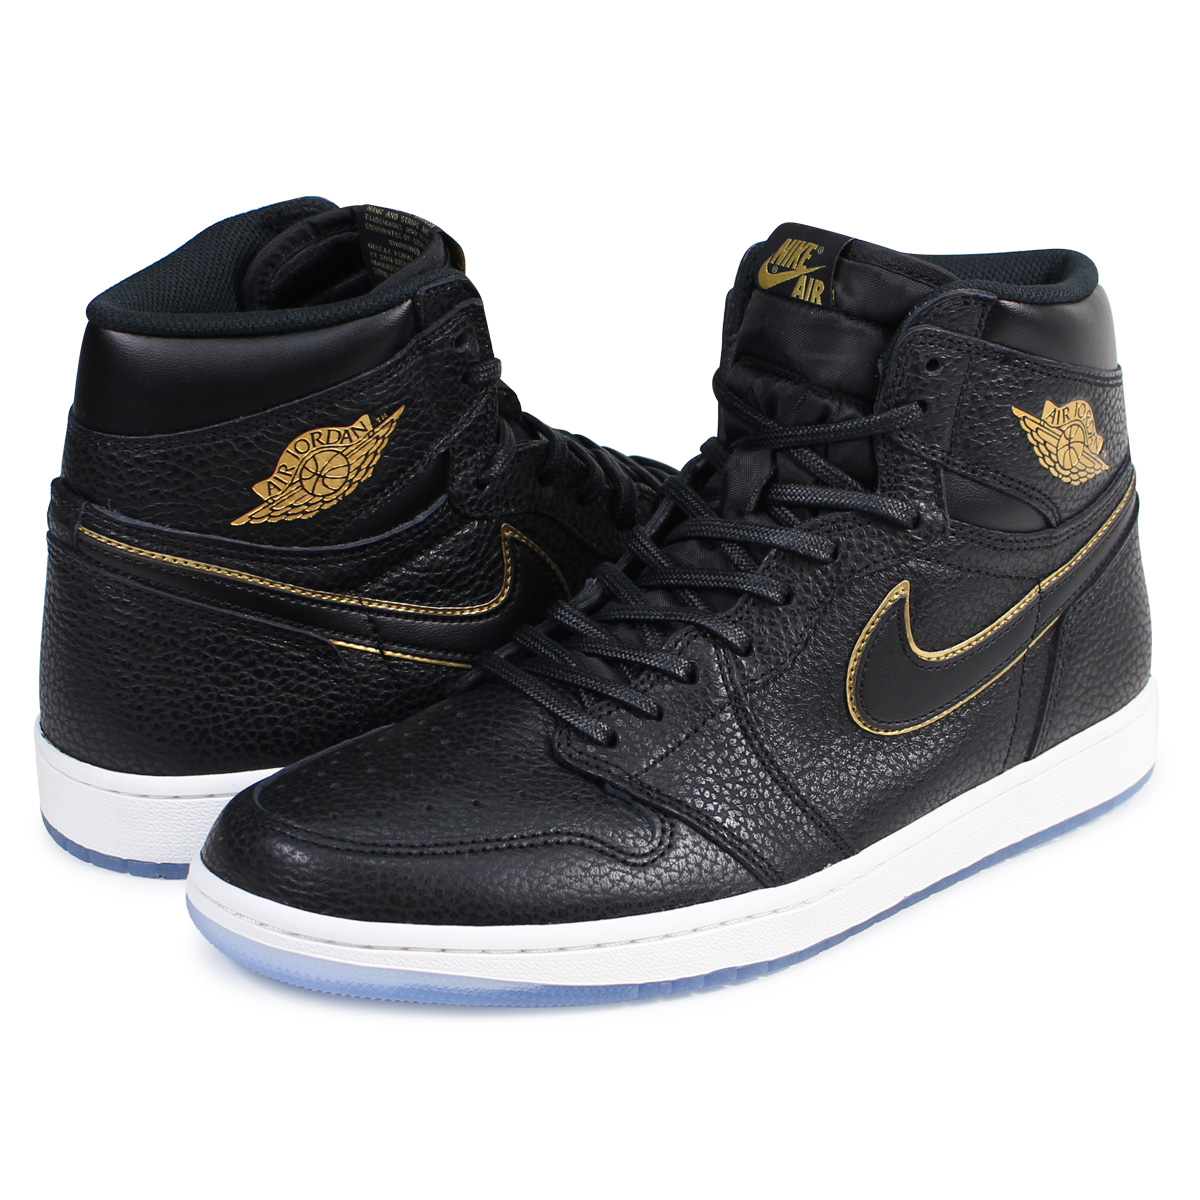 buy online 739e2 1d9fc NIKE AIR JORDAN 1 RETRO HIGH OG Nike Air Jordan 1 nostalgic high sneakers  555,088-031 men s shoes black  load planned Shinnyu load in reservation  product ...